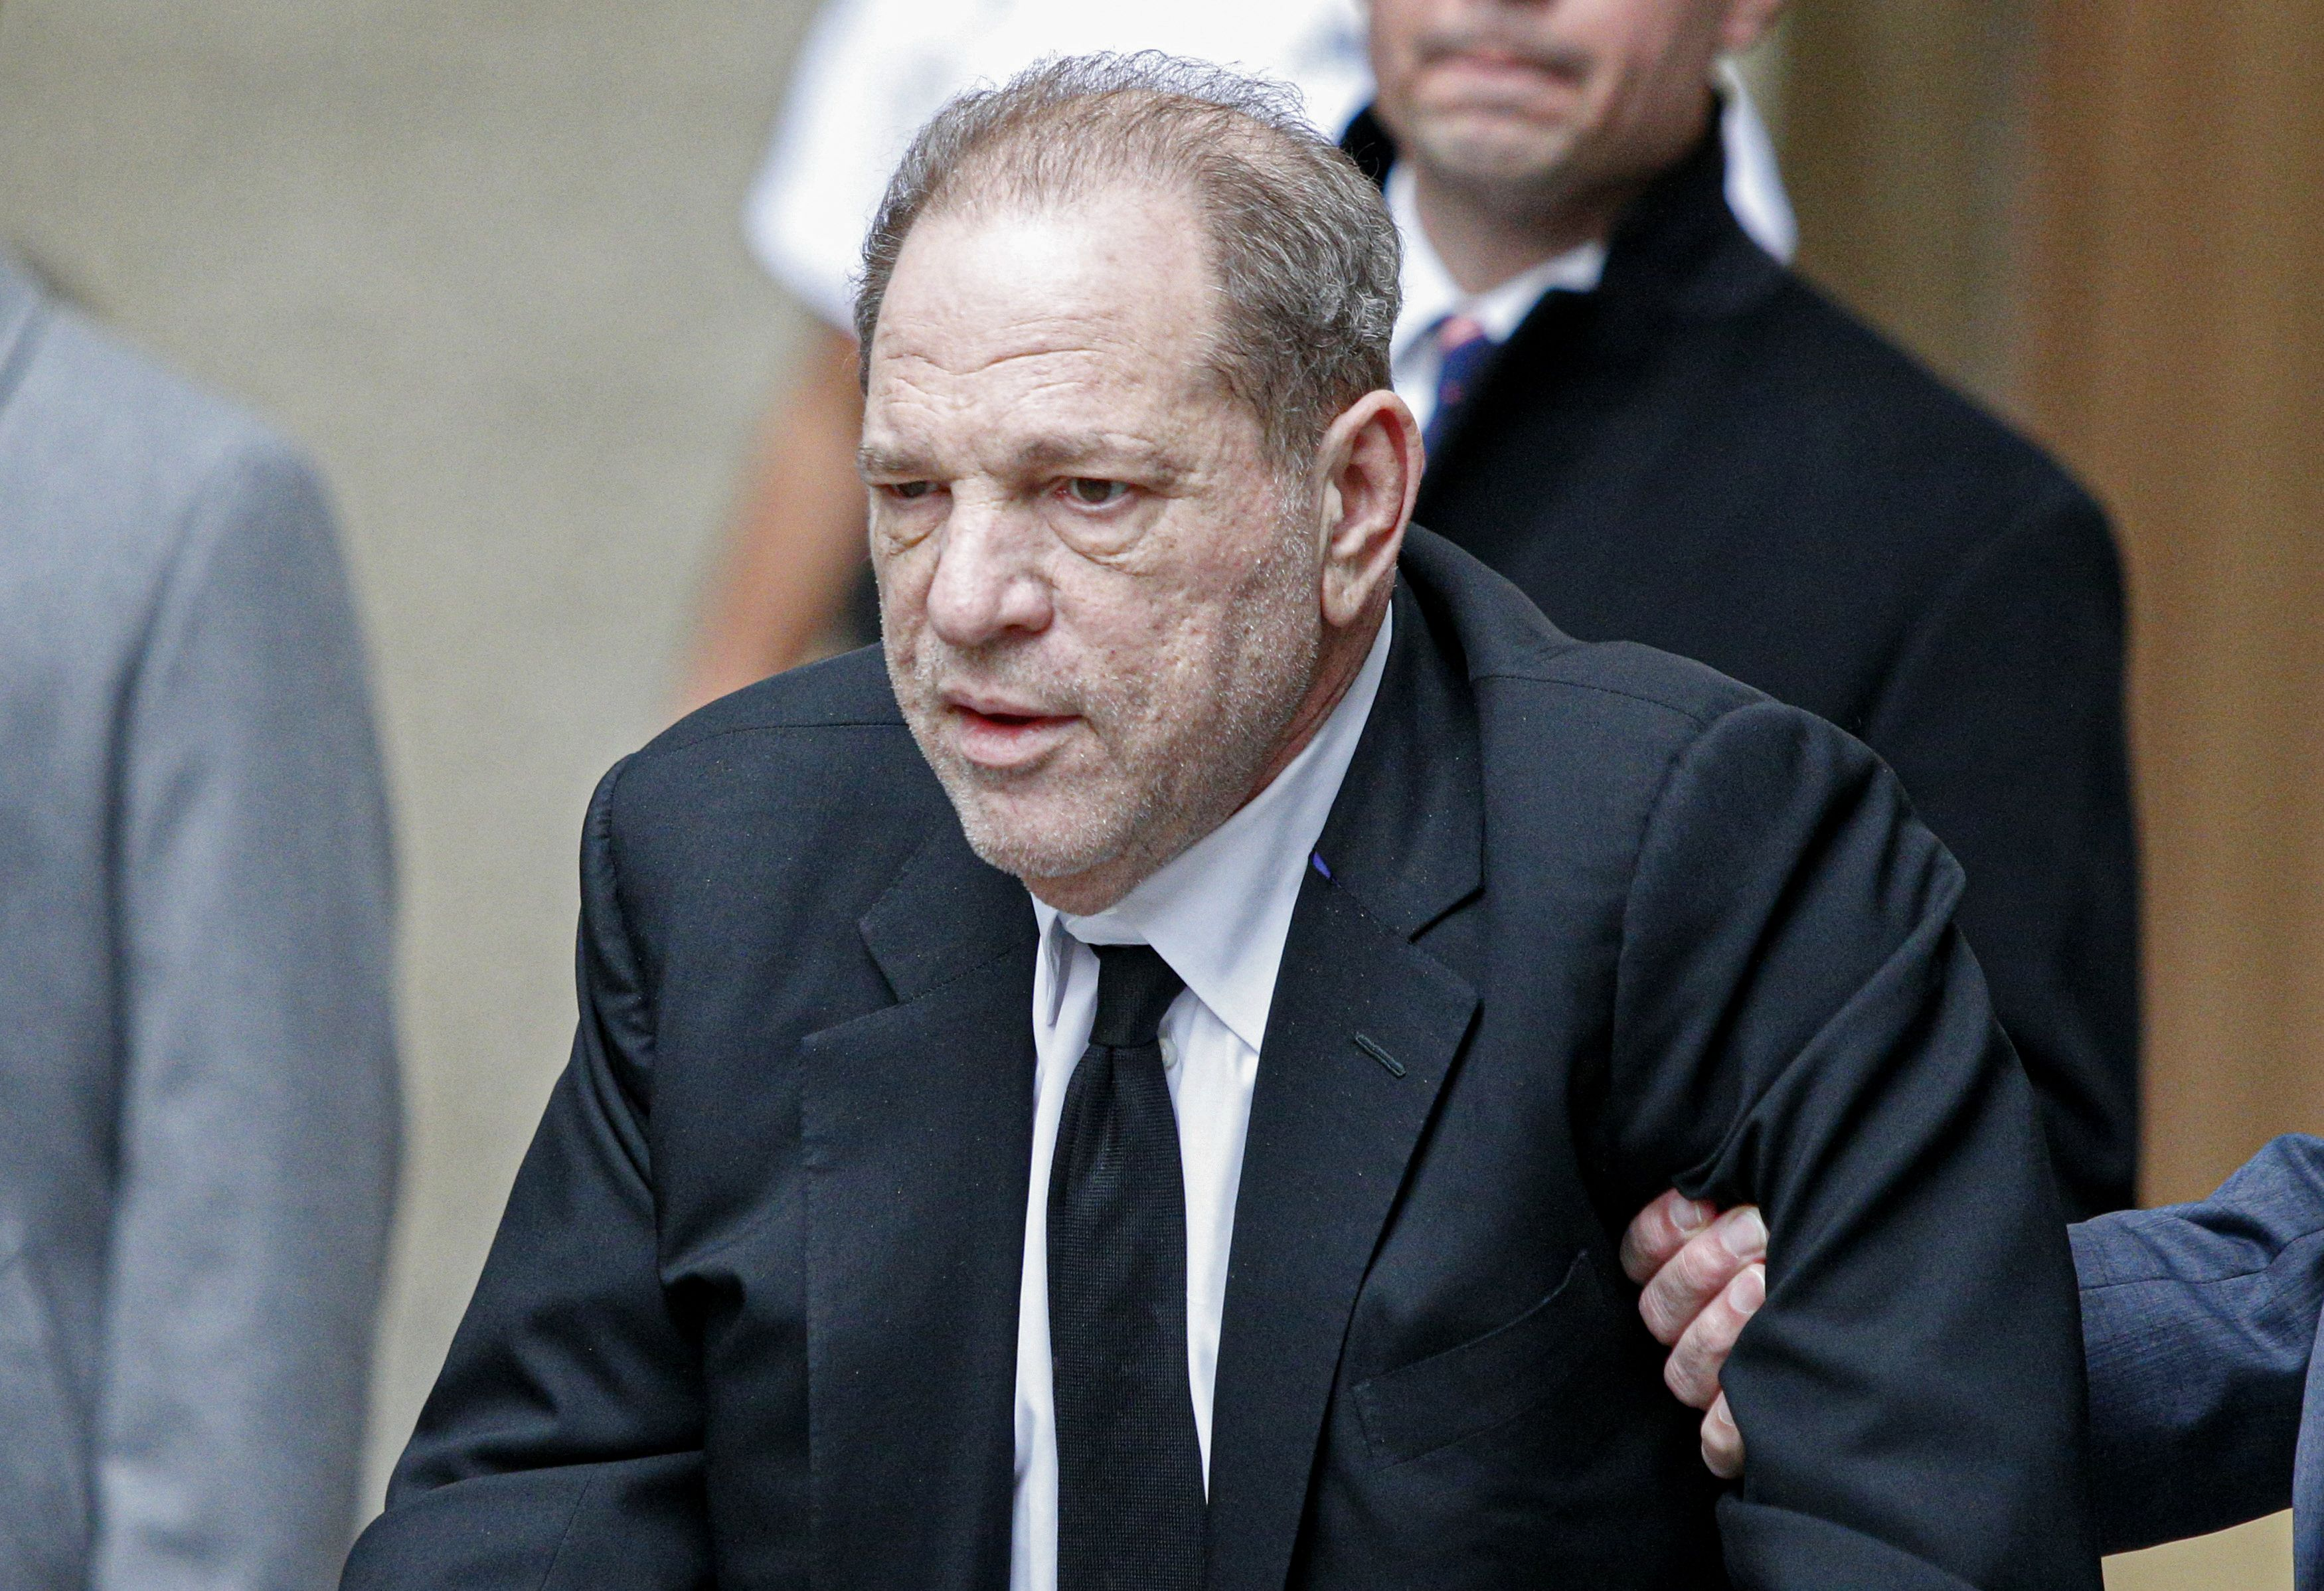 Harvey Weinstein S Trial Walkers Witnesses And A Soldier Prosecutor